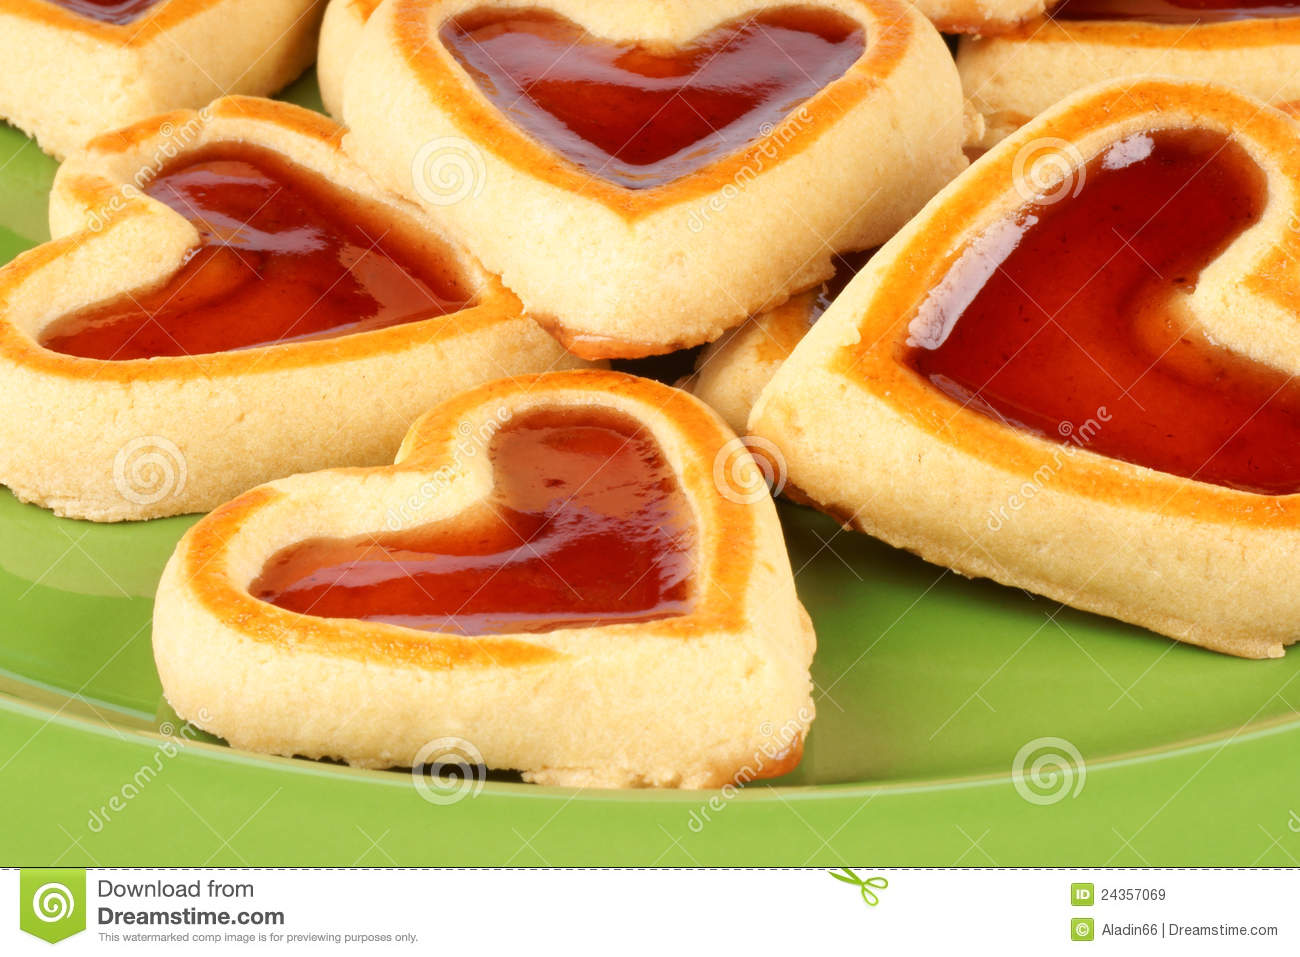 ... of some heart shaped cherry jam cookies for a sweet Valentine's day